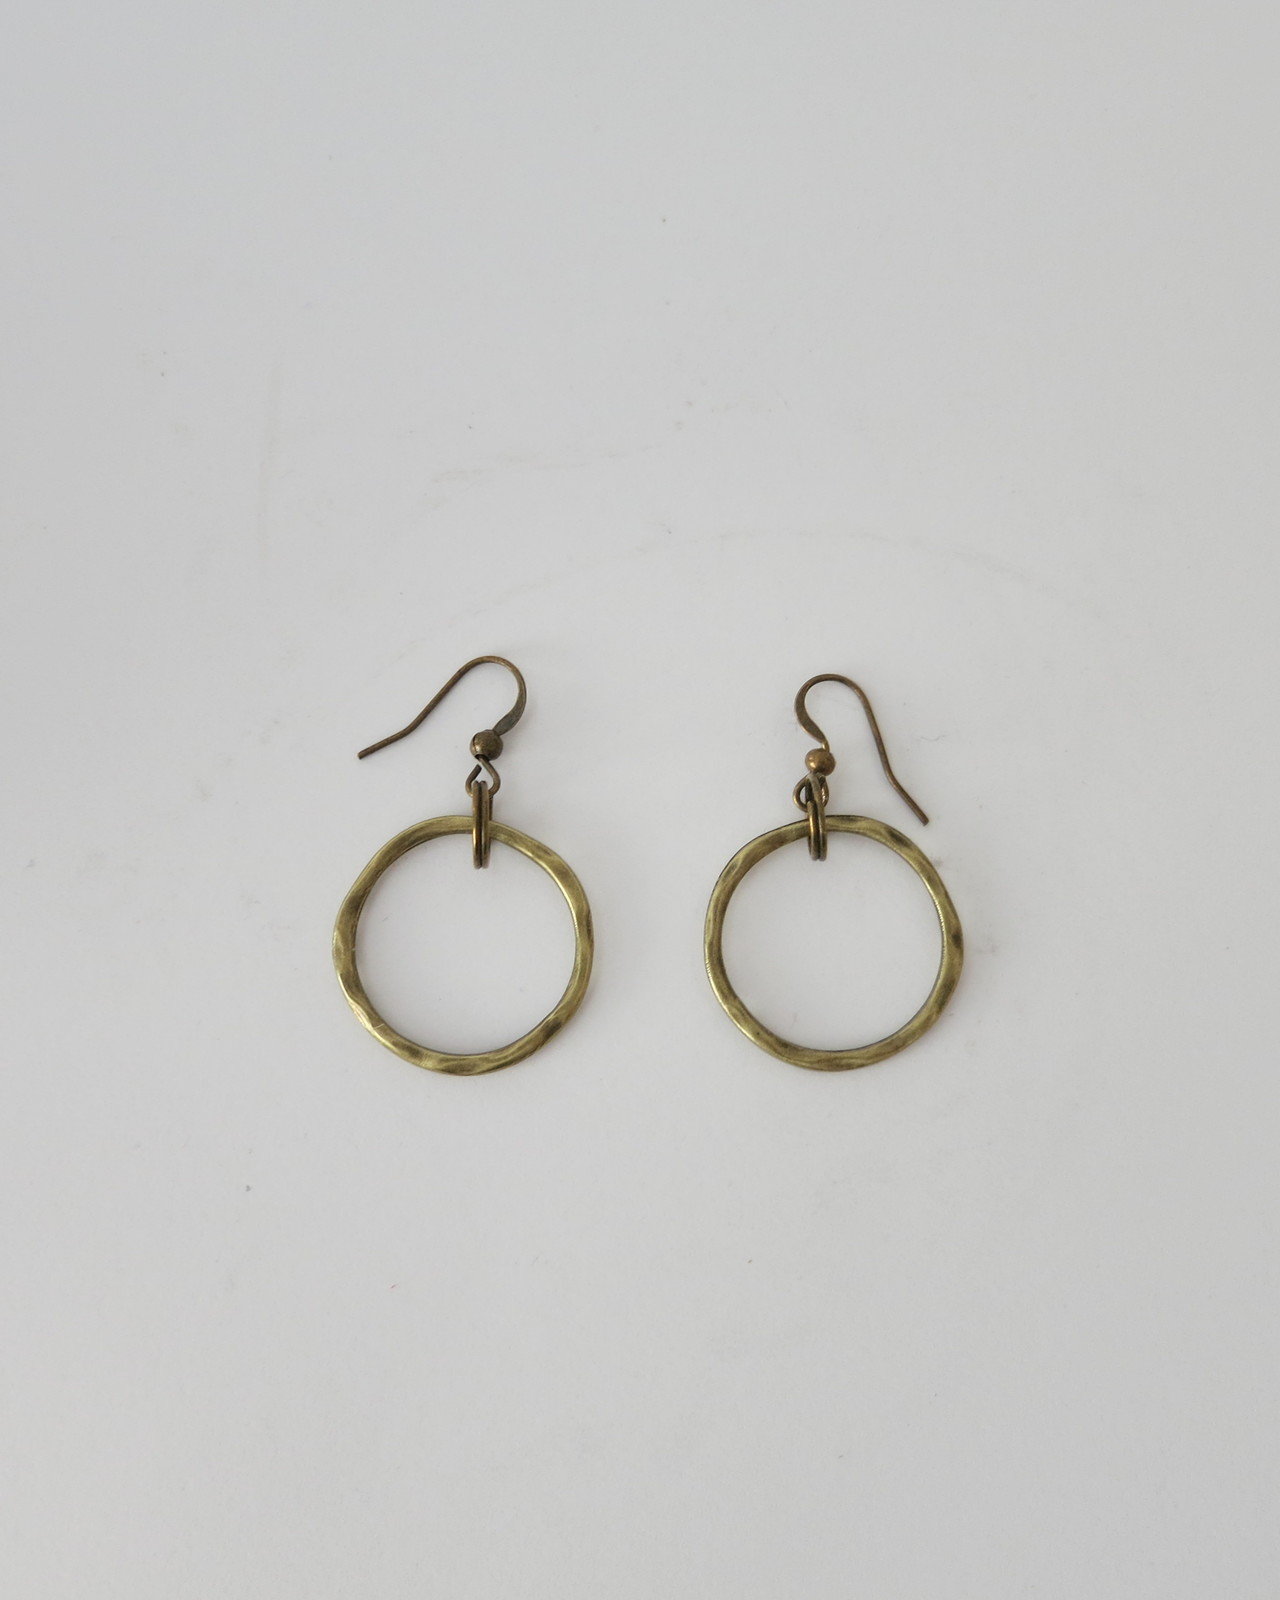 Simple hammered circle, aged bronze finish dangle earrings